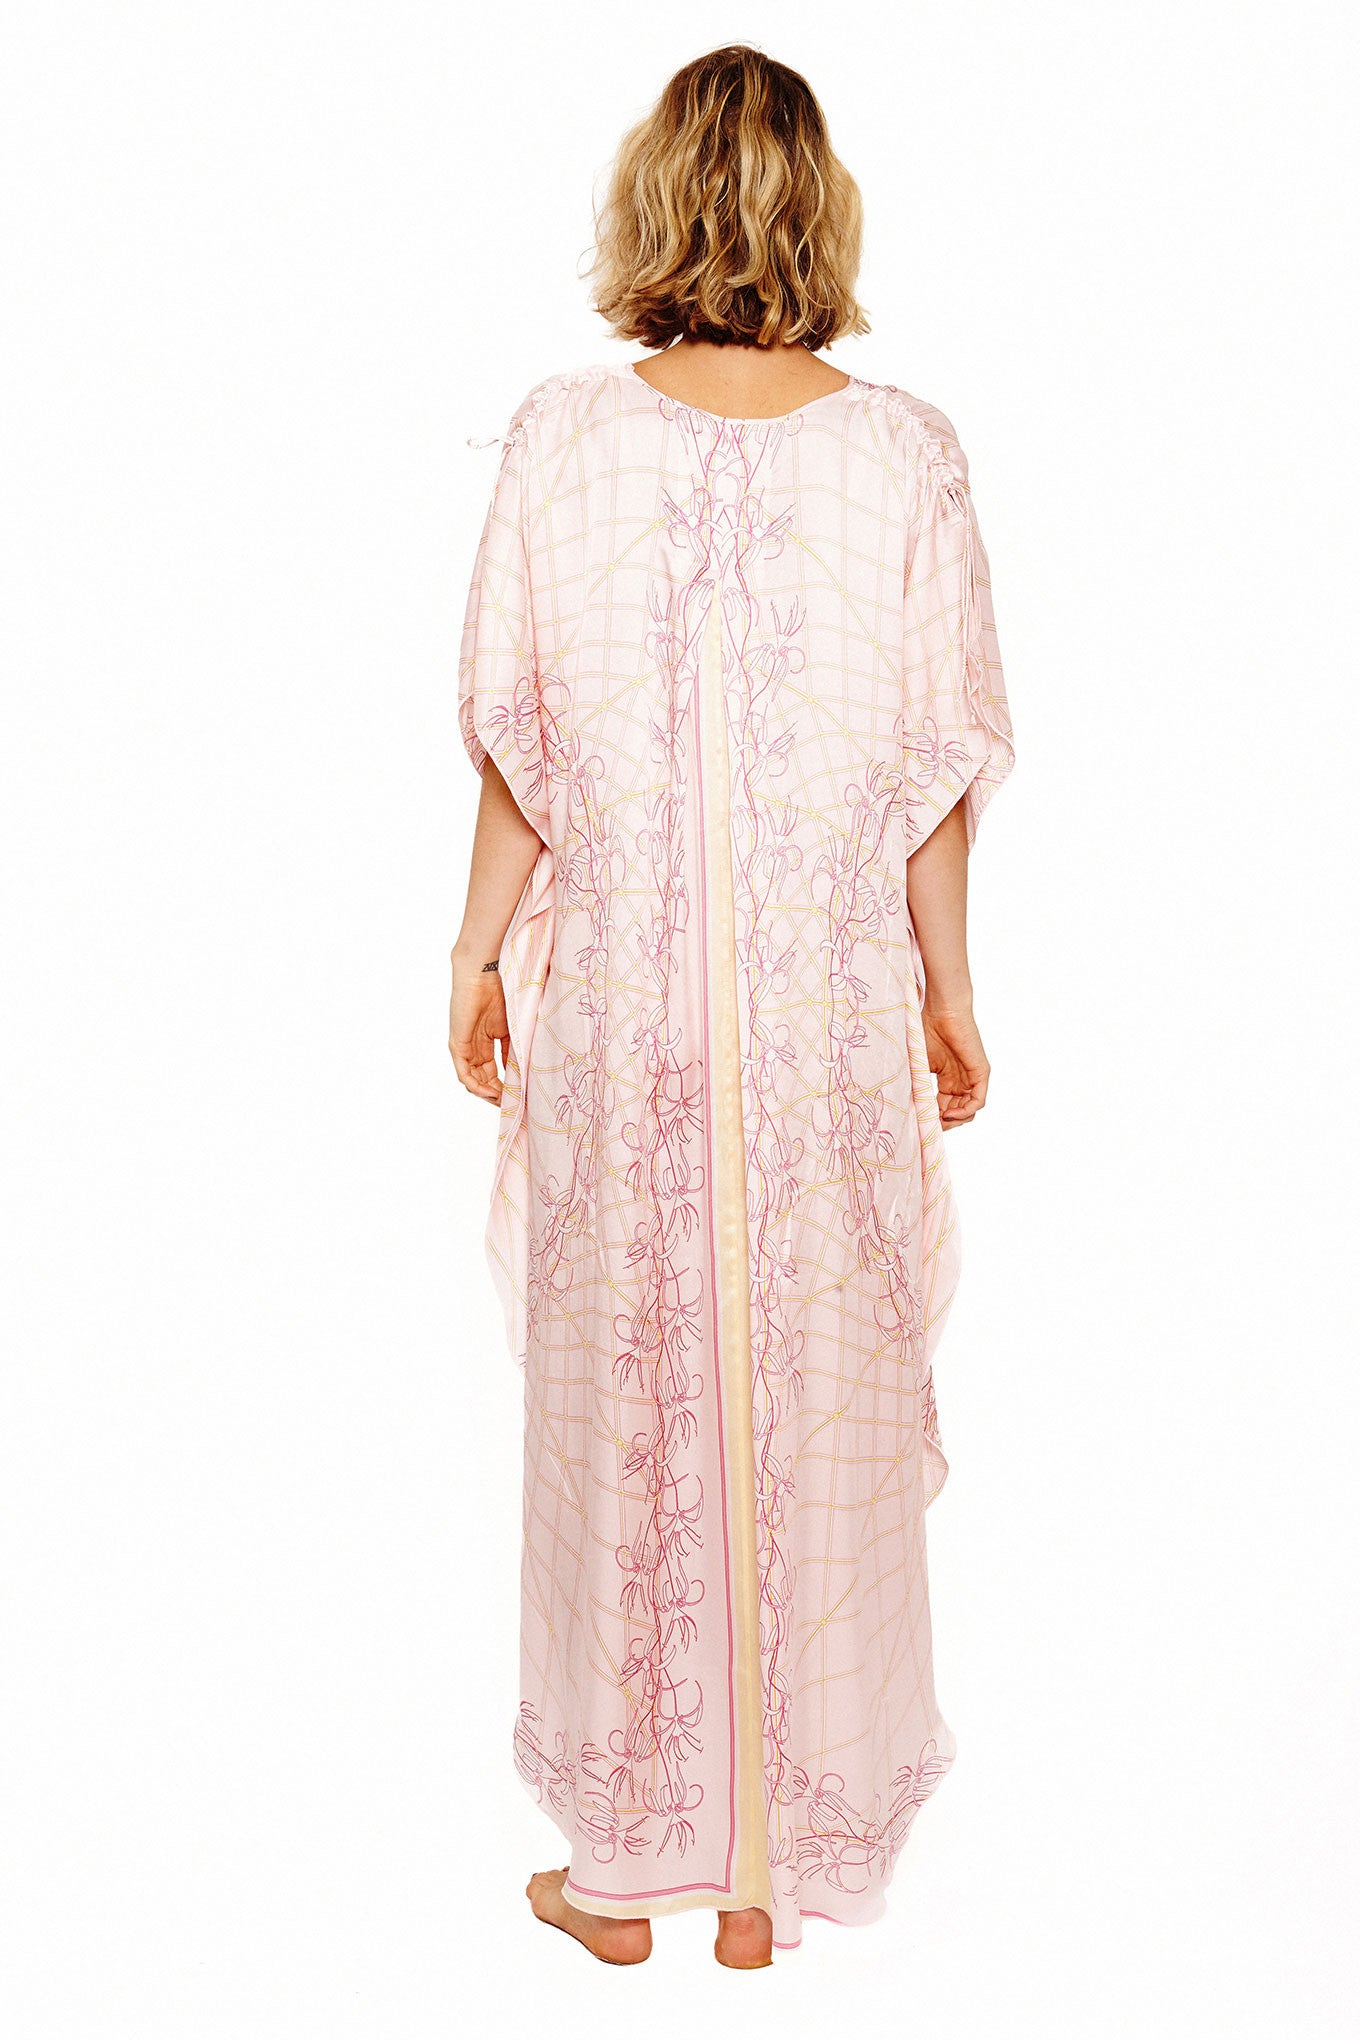 Lotty B Long Kaftan in Silk Crepe-de-Chine (Spiderlily Peach Pink) Back